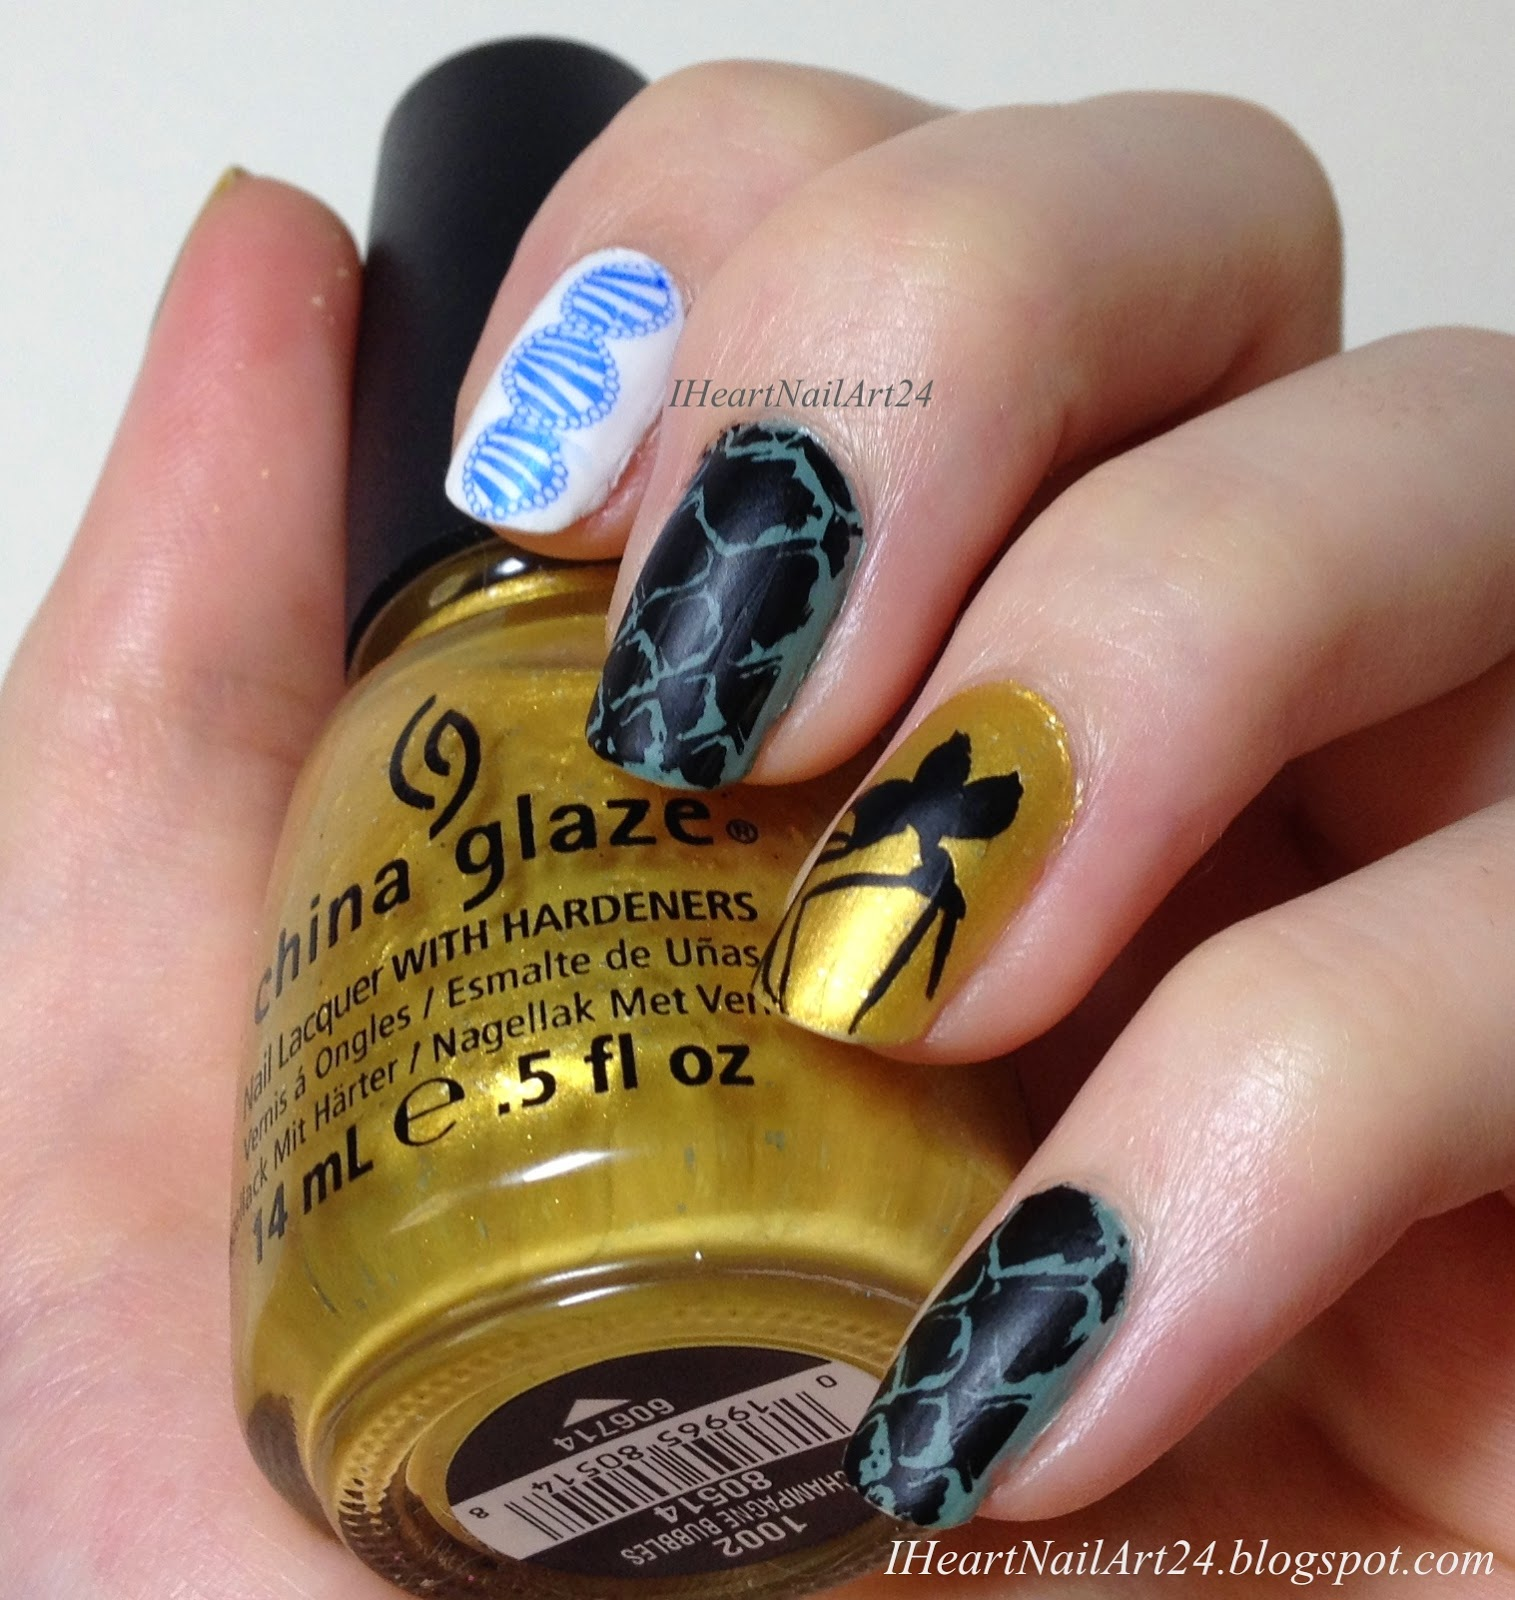 Welcome... to Jurassic Park!   I Heart Nail Art